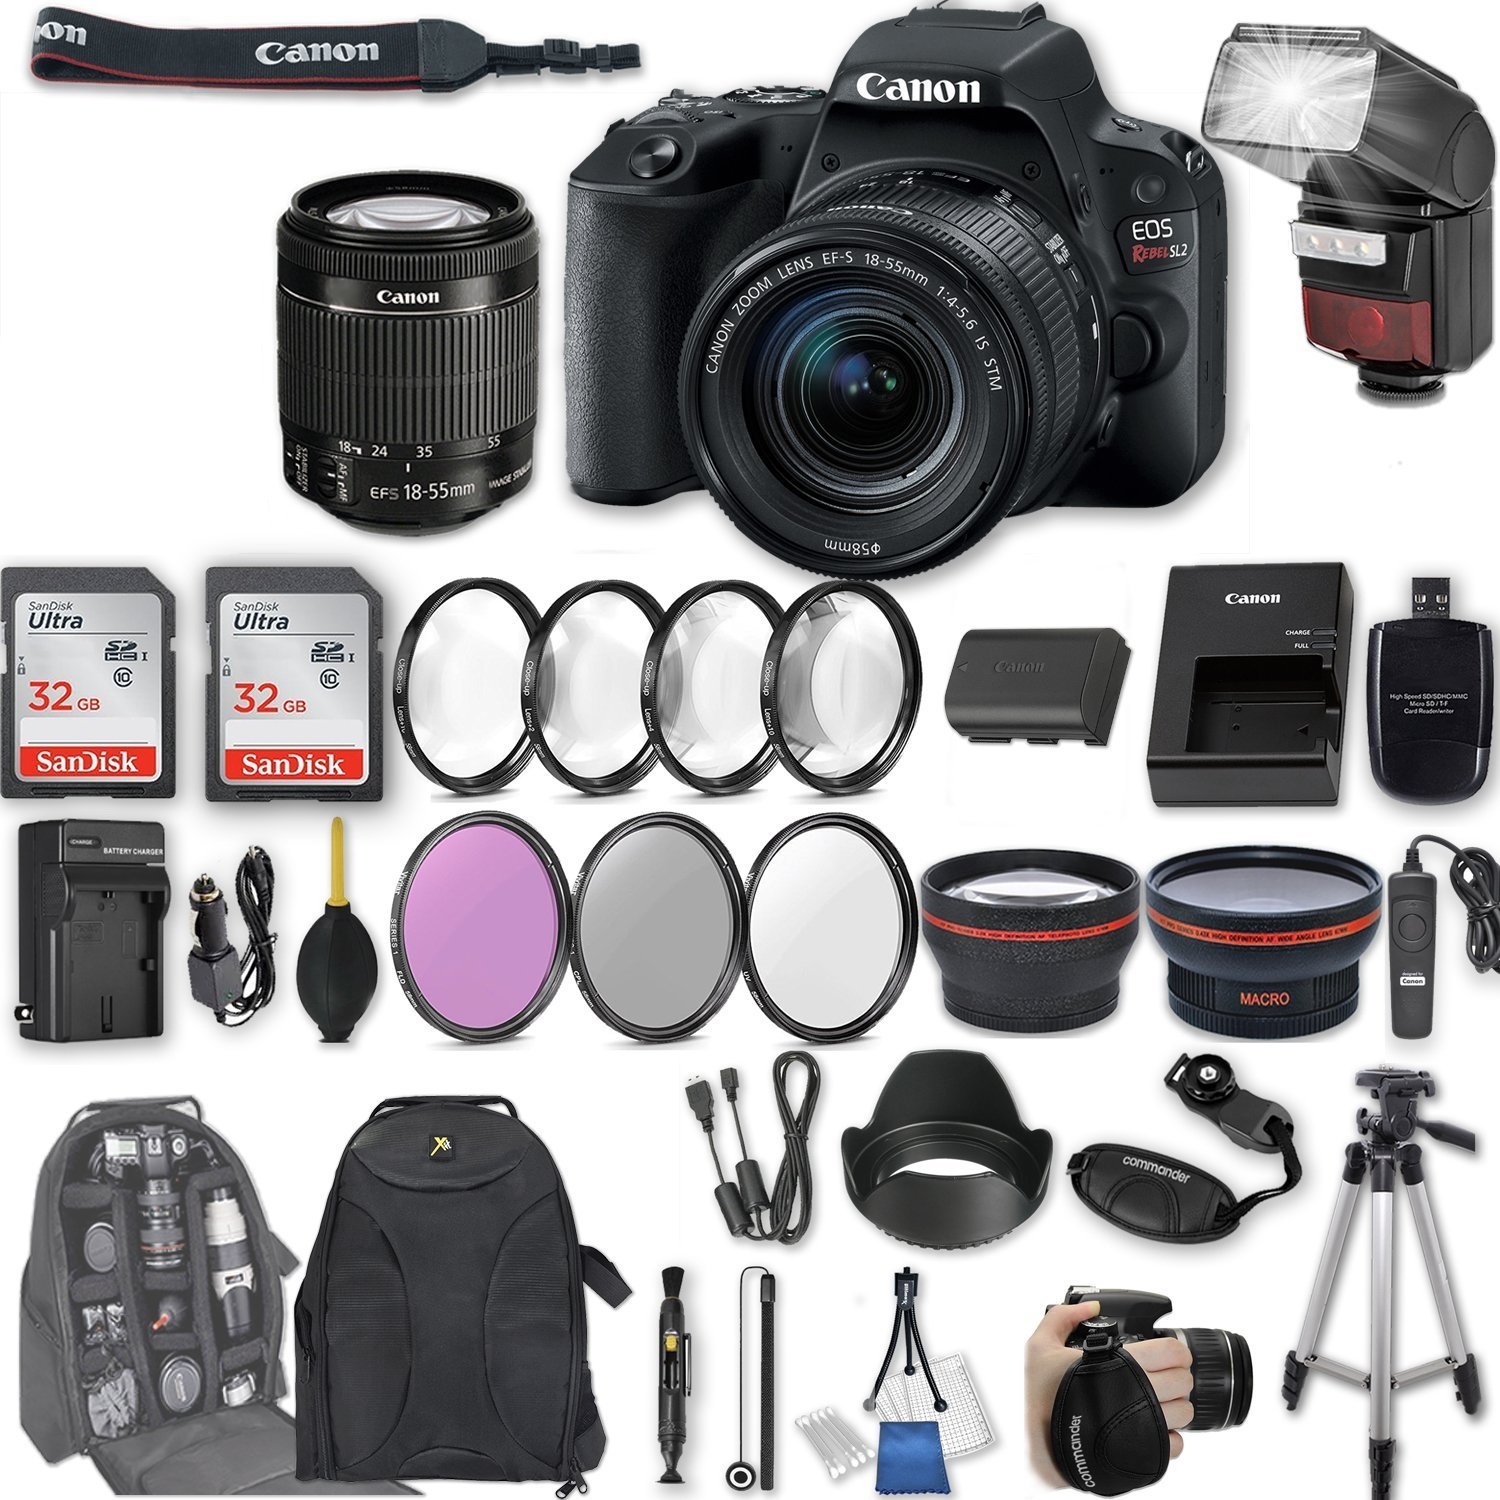 Canon EOS Rebel SL2 DSLR Camera with EF-S 18-55mm f/4-5.6 IS STM Lens + 2Pcs 32GB Sandisk SD Memory + Automatic Flash + Filter & Macro Kits + Backpack + 50'' Tripod + More